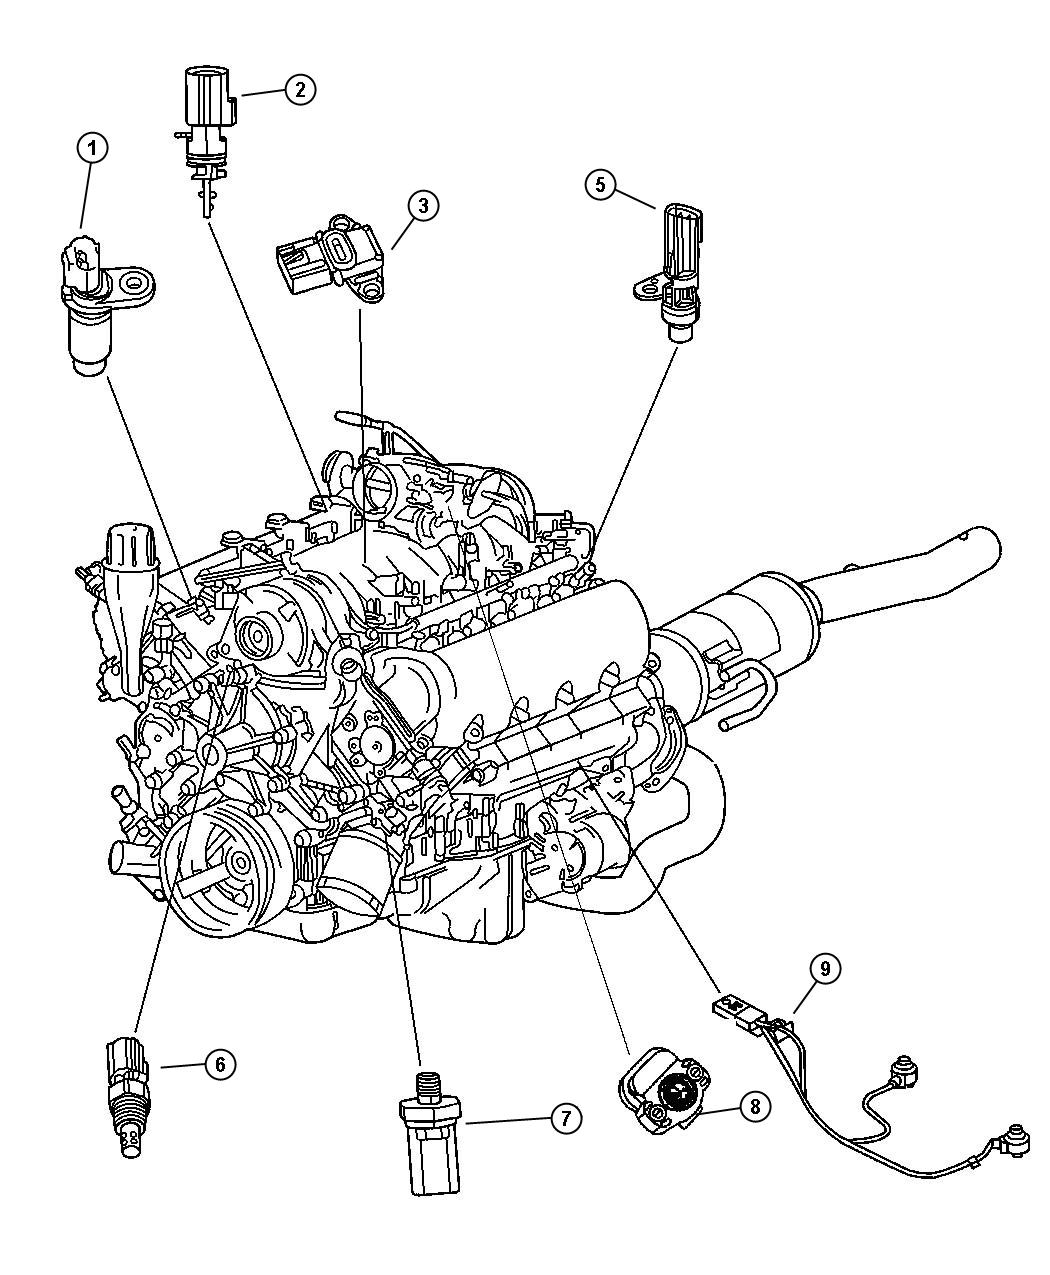 Jeep Engine Diagram Cam Great Design Of Wiring 360 Map Sensor Location 4 7l Free Image For Cj7 2001 Grand Cherokee